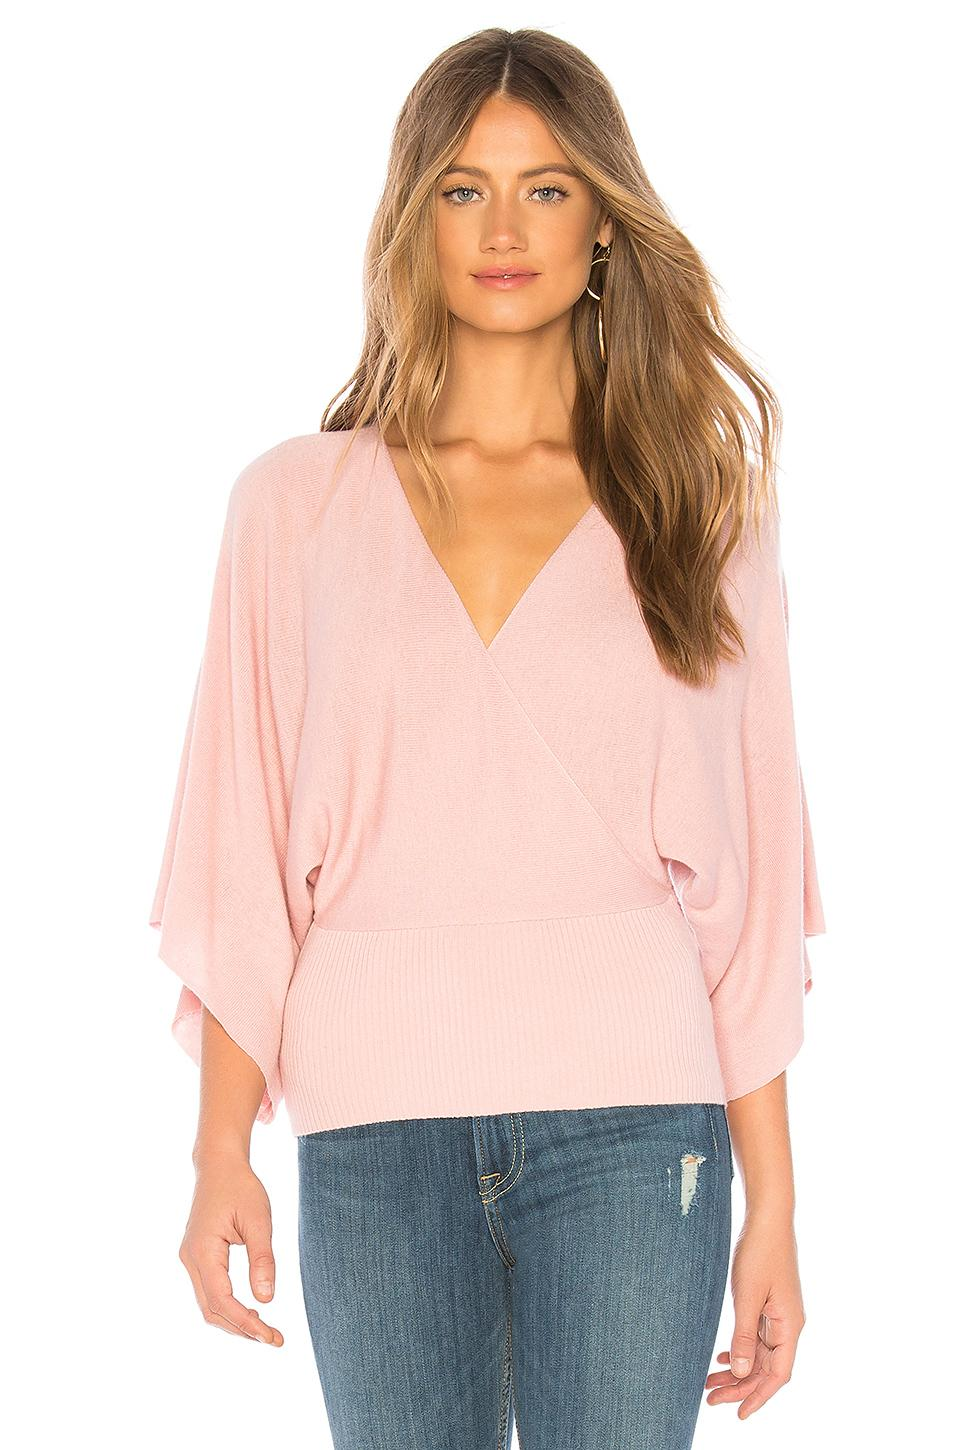 770d35bc234 Lyst - Bailey 44 Eye In The Sky Sweater in Pink - Save 70%